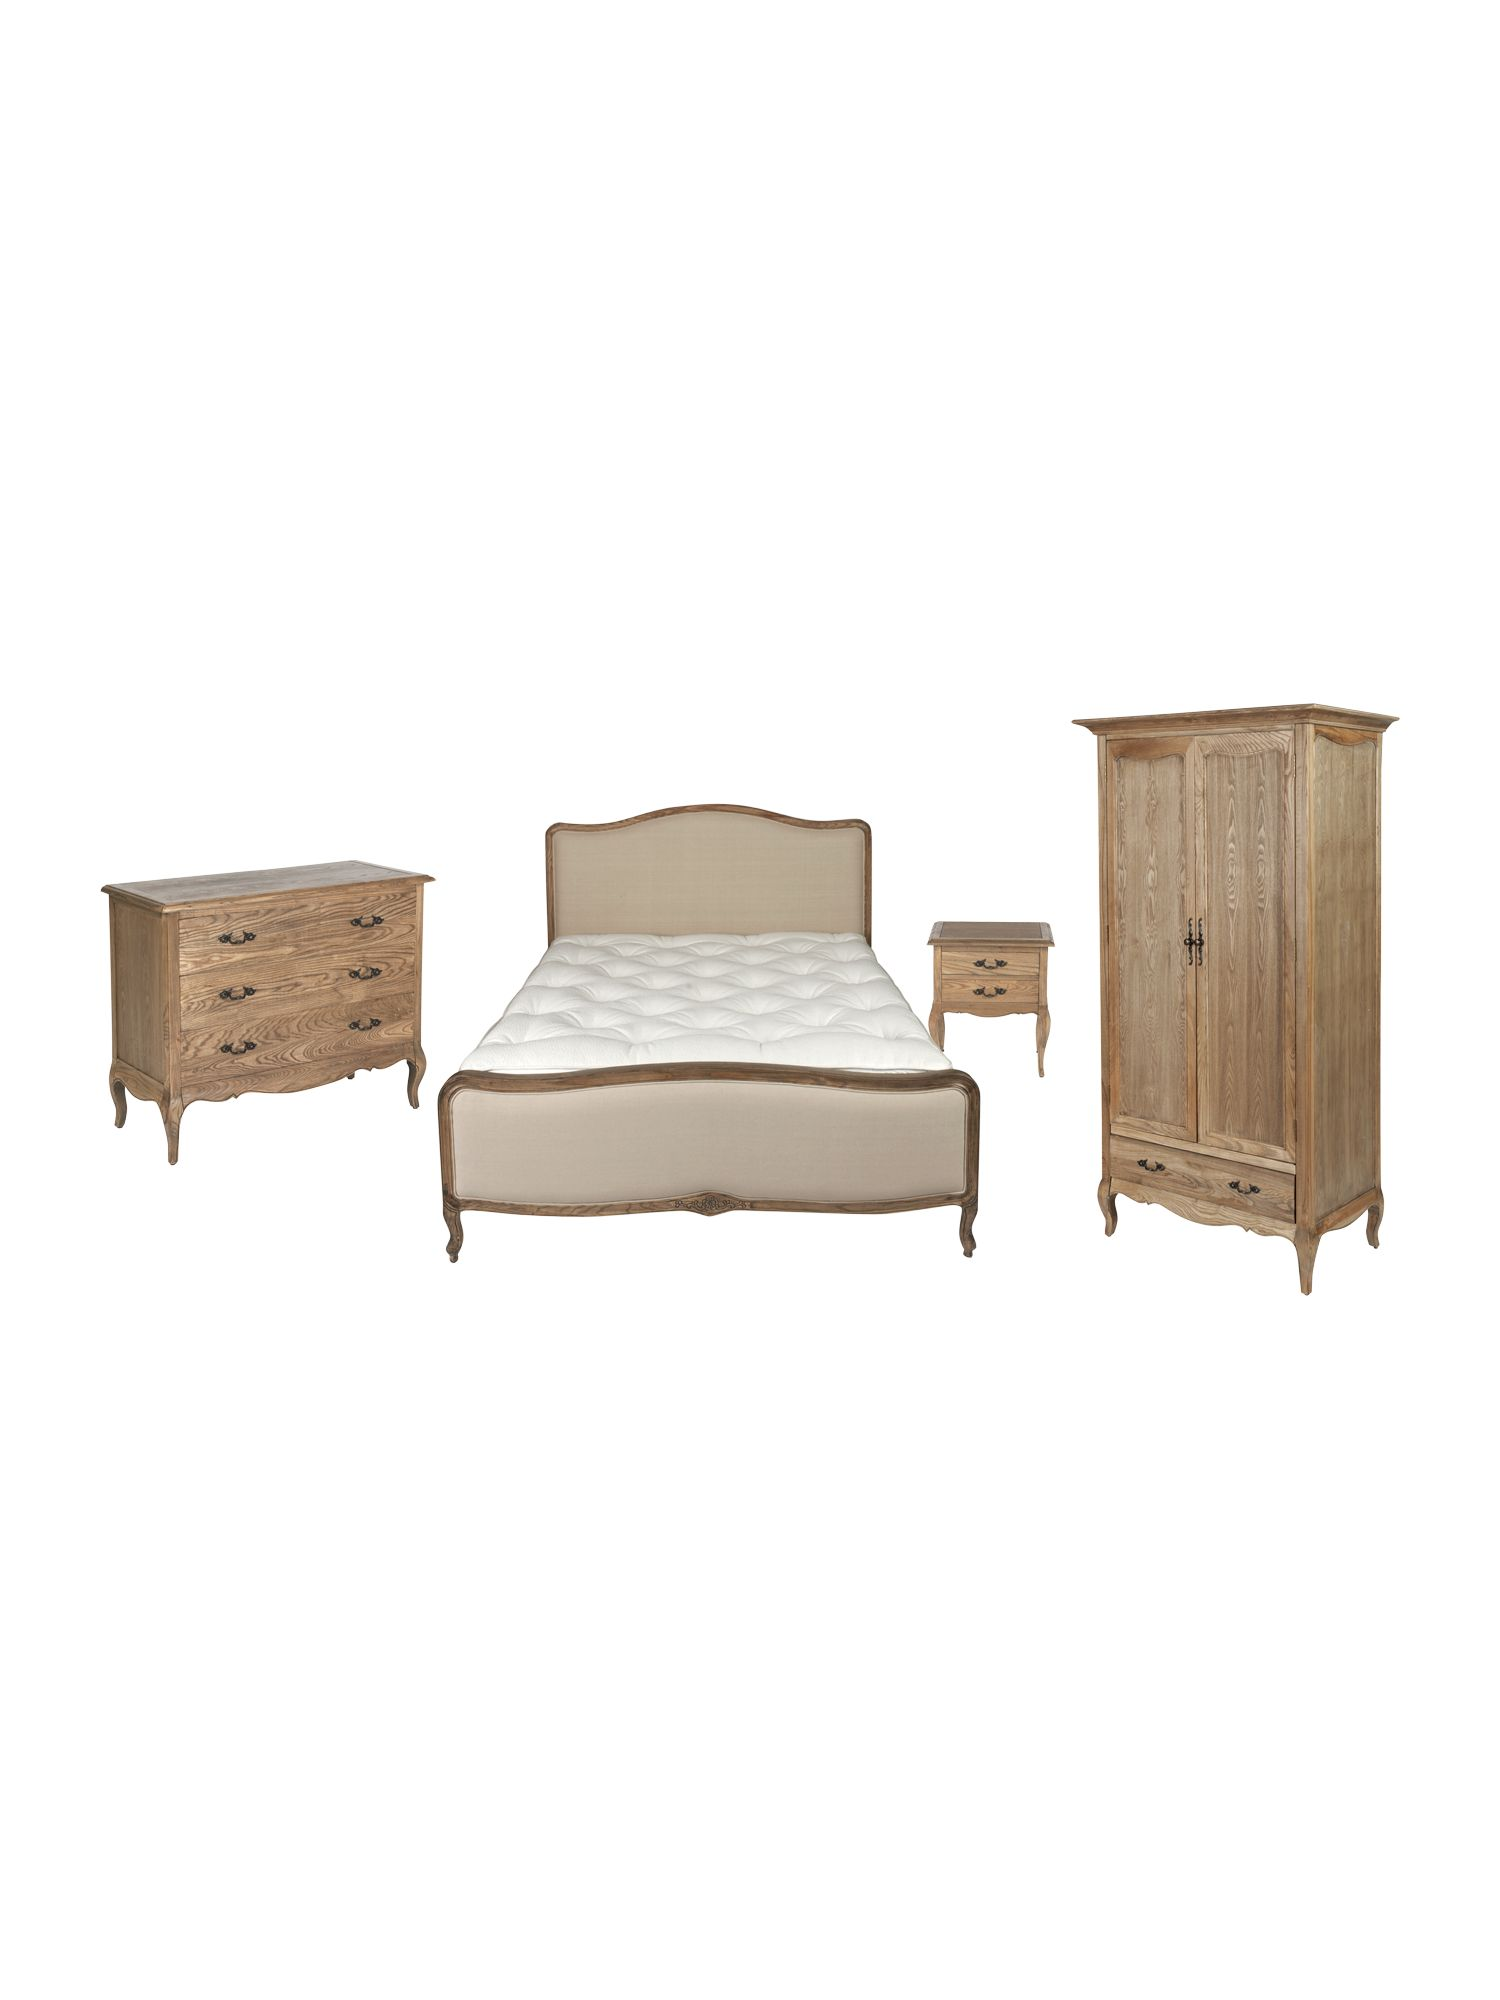 Bel Ami Bedroom Furniture Range.